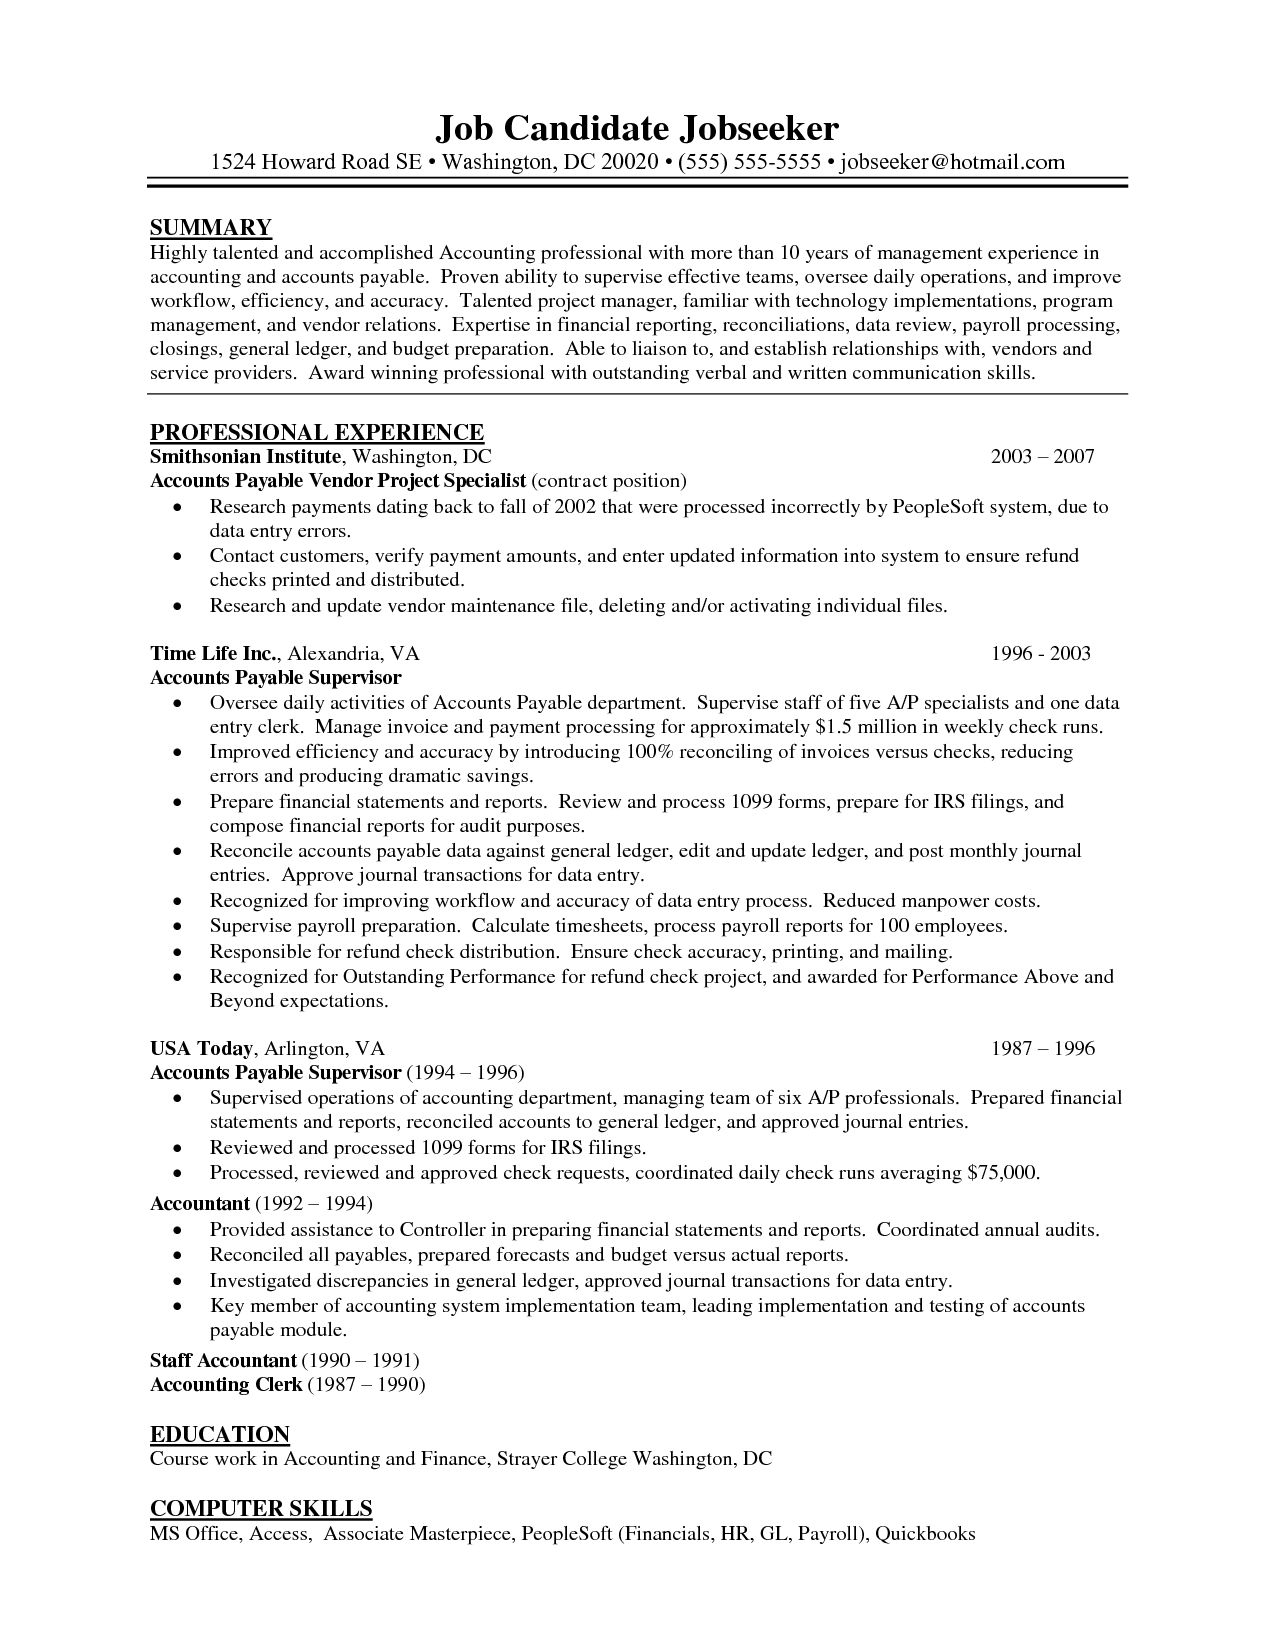 Accounts Payable And Receivable Resume Inspiration Resume Examples Accounts Payable  Pinterest  Resume Examples